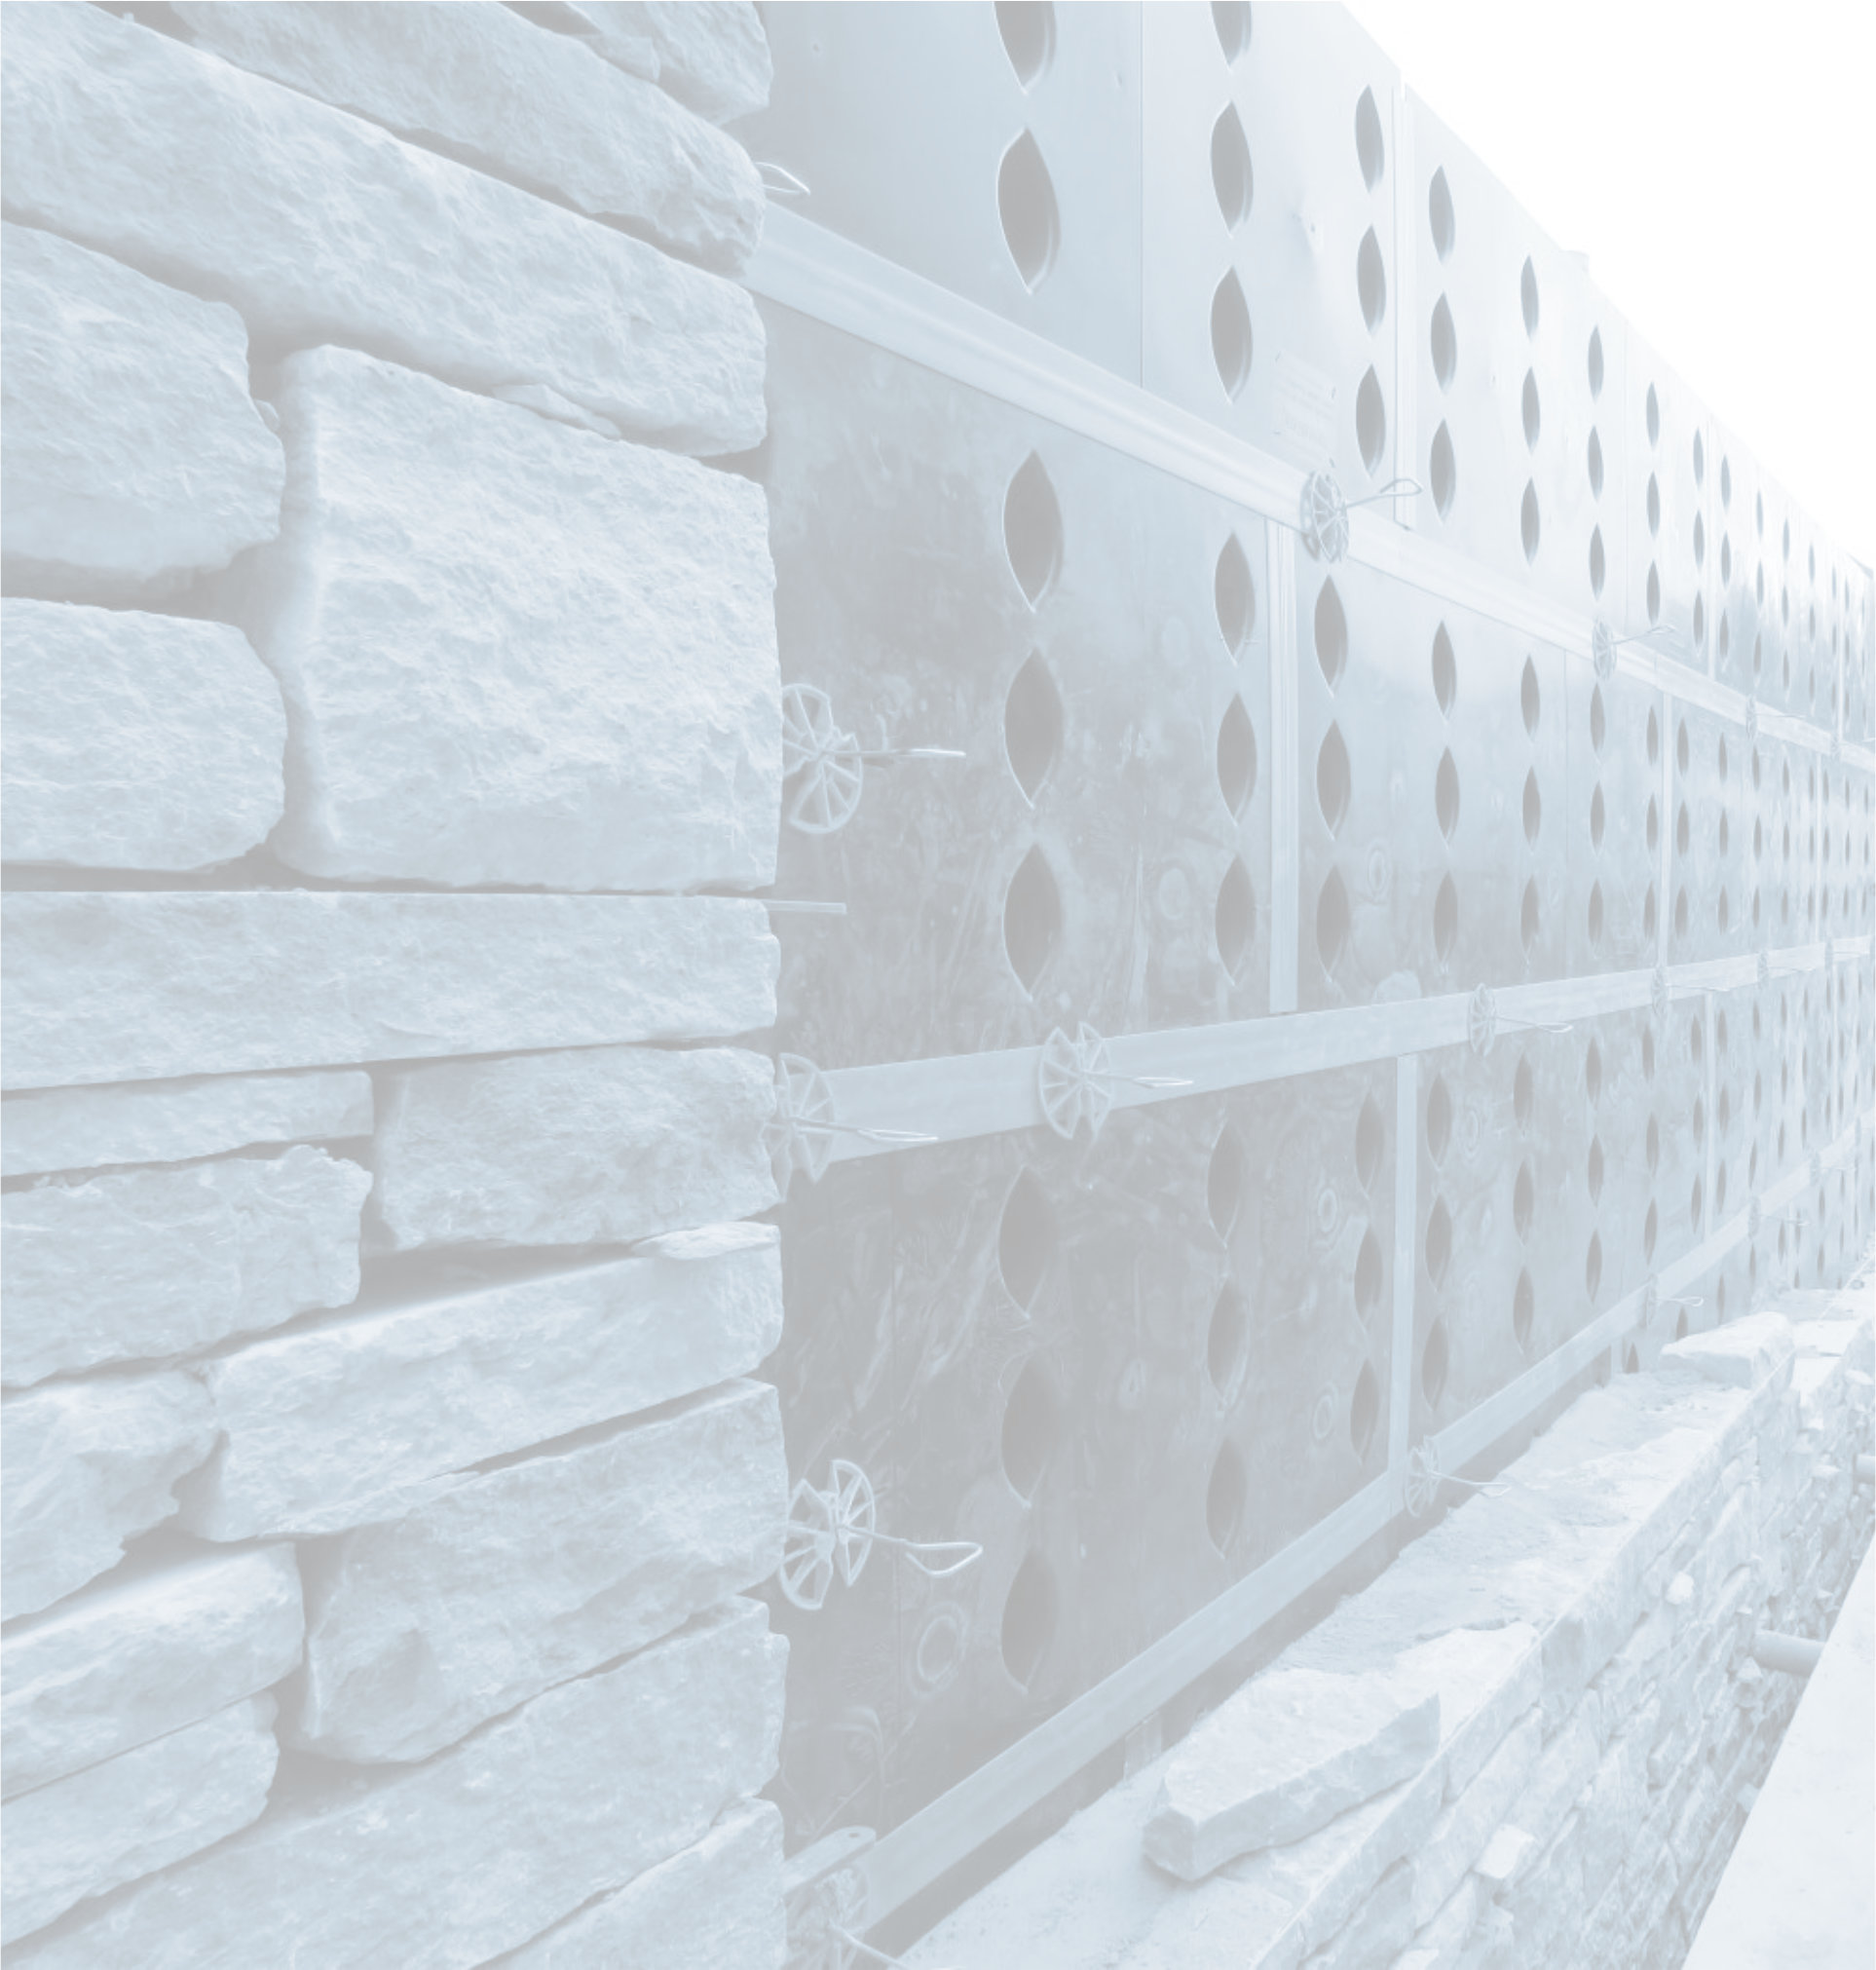 Eco-friendly, cost-effective 25mm cavity-wall technology!